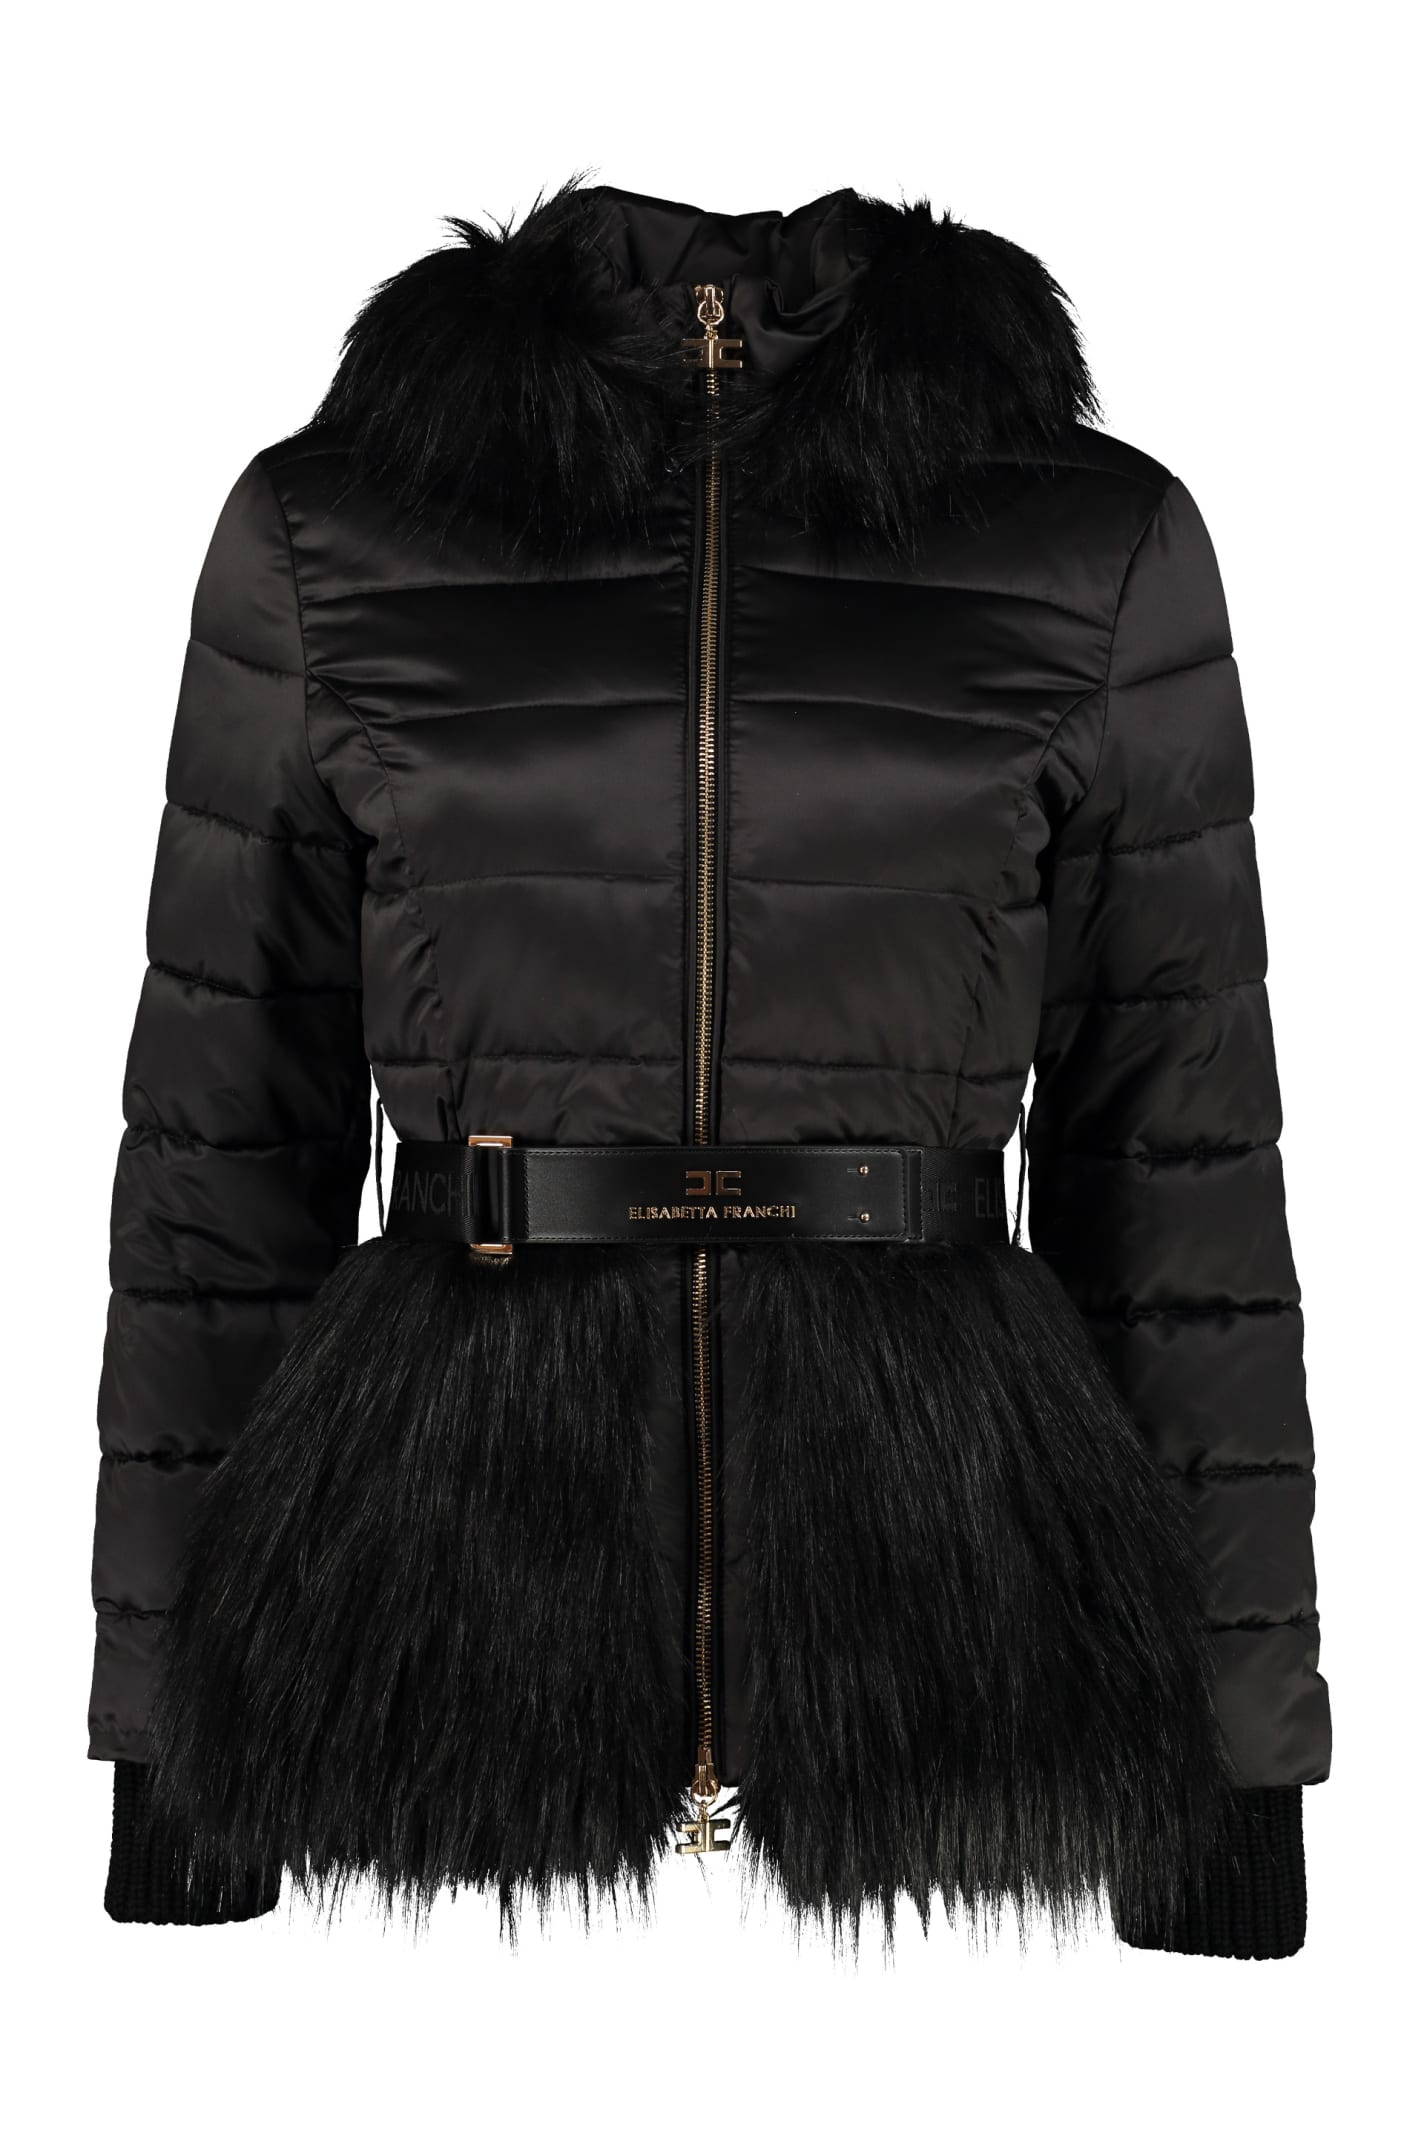 Elisabetta Franchi Celyn B. Hooded Down Jacket